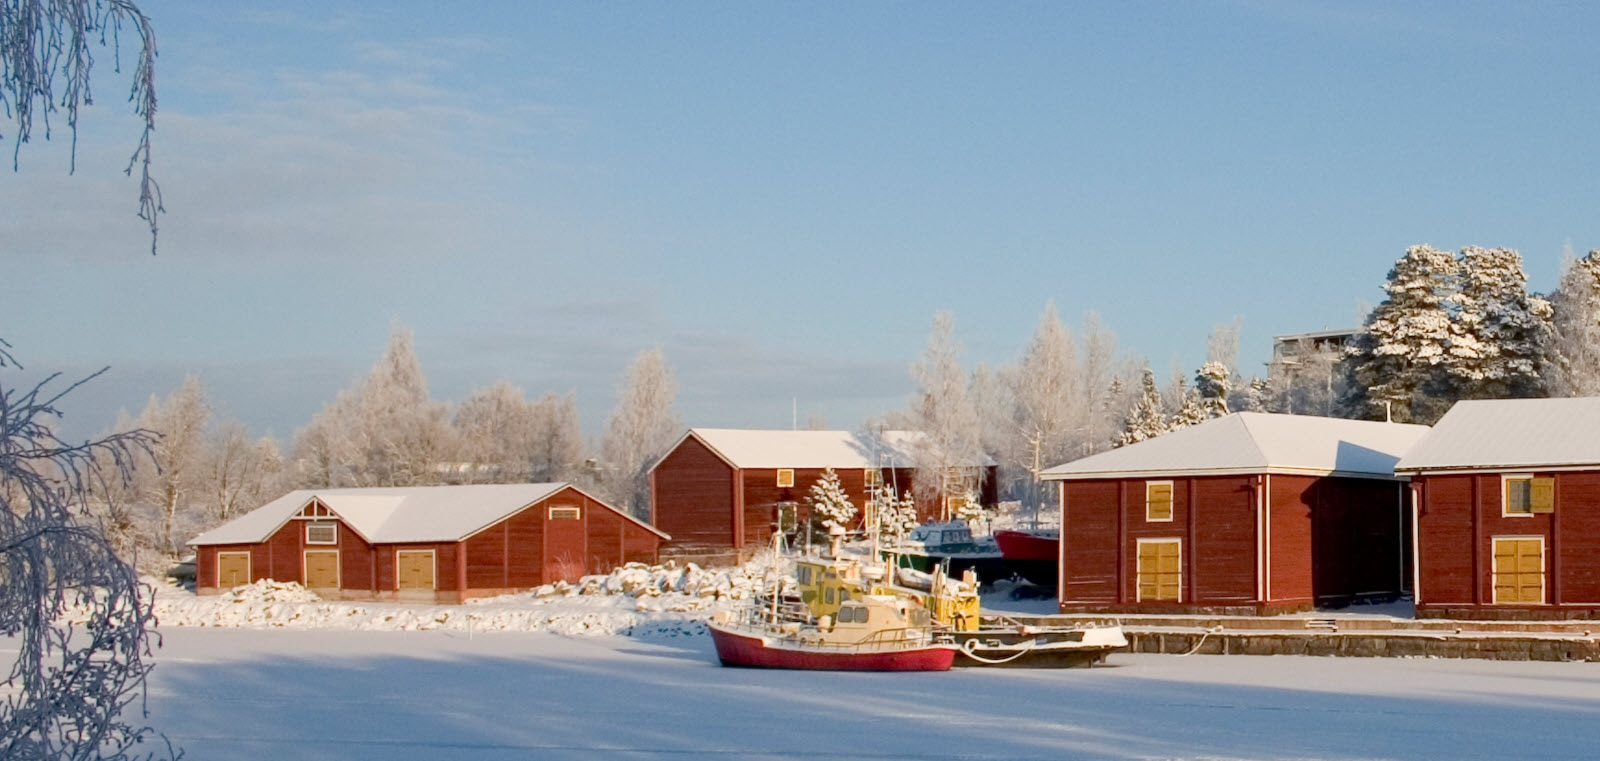 Vaasa_Winter_Palosaari_Old_Storehouse_PainoVaaka_J.jpg